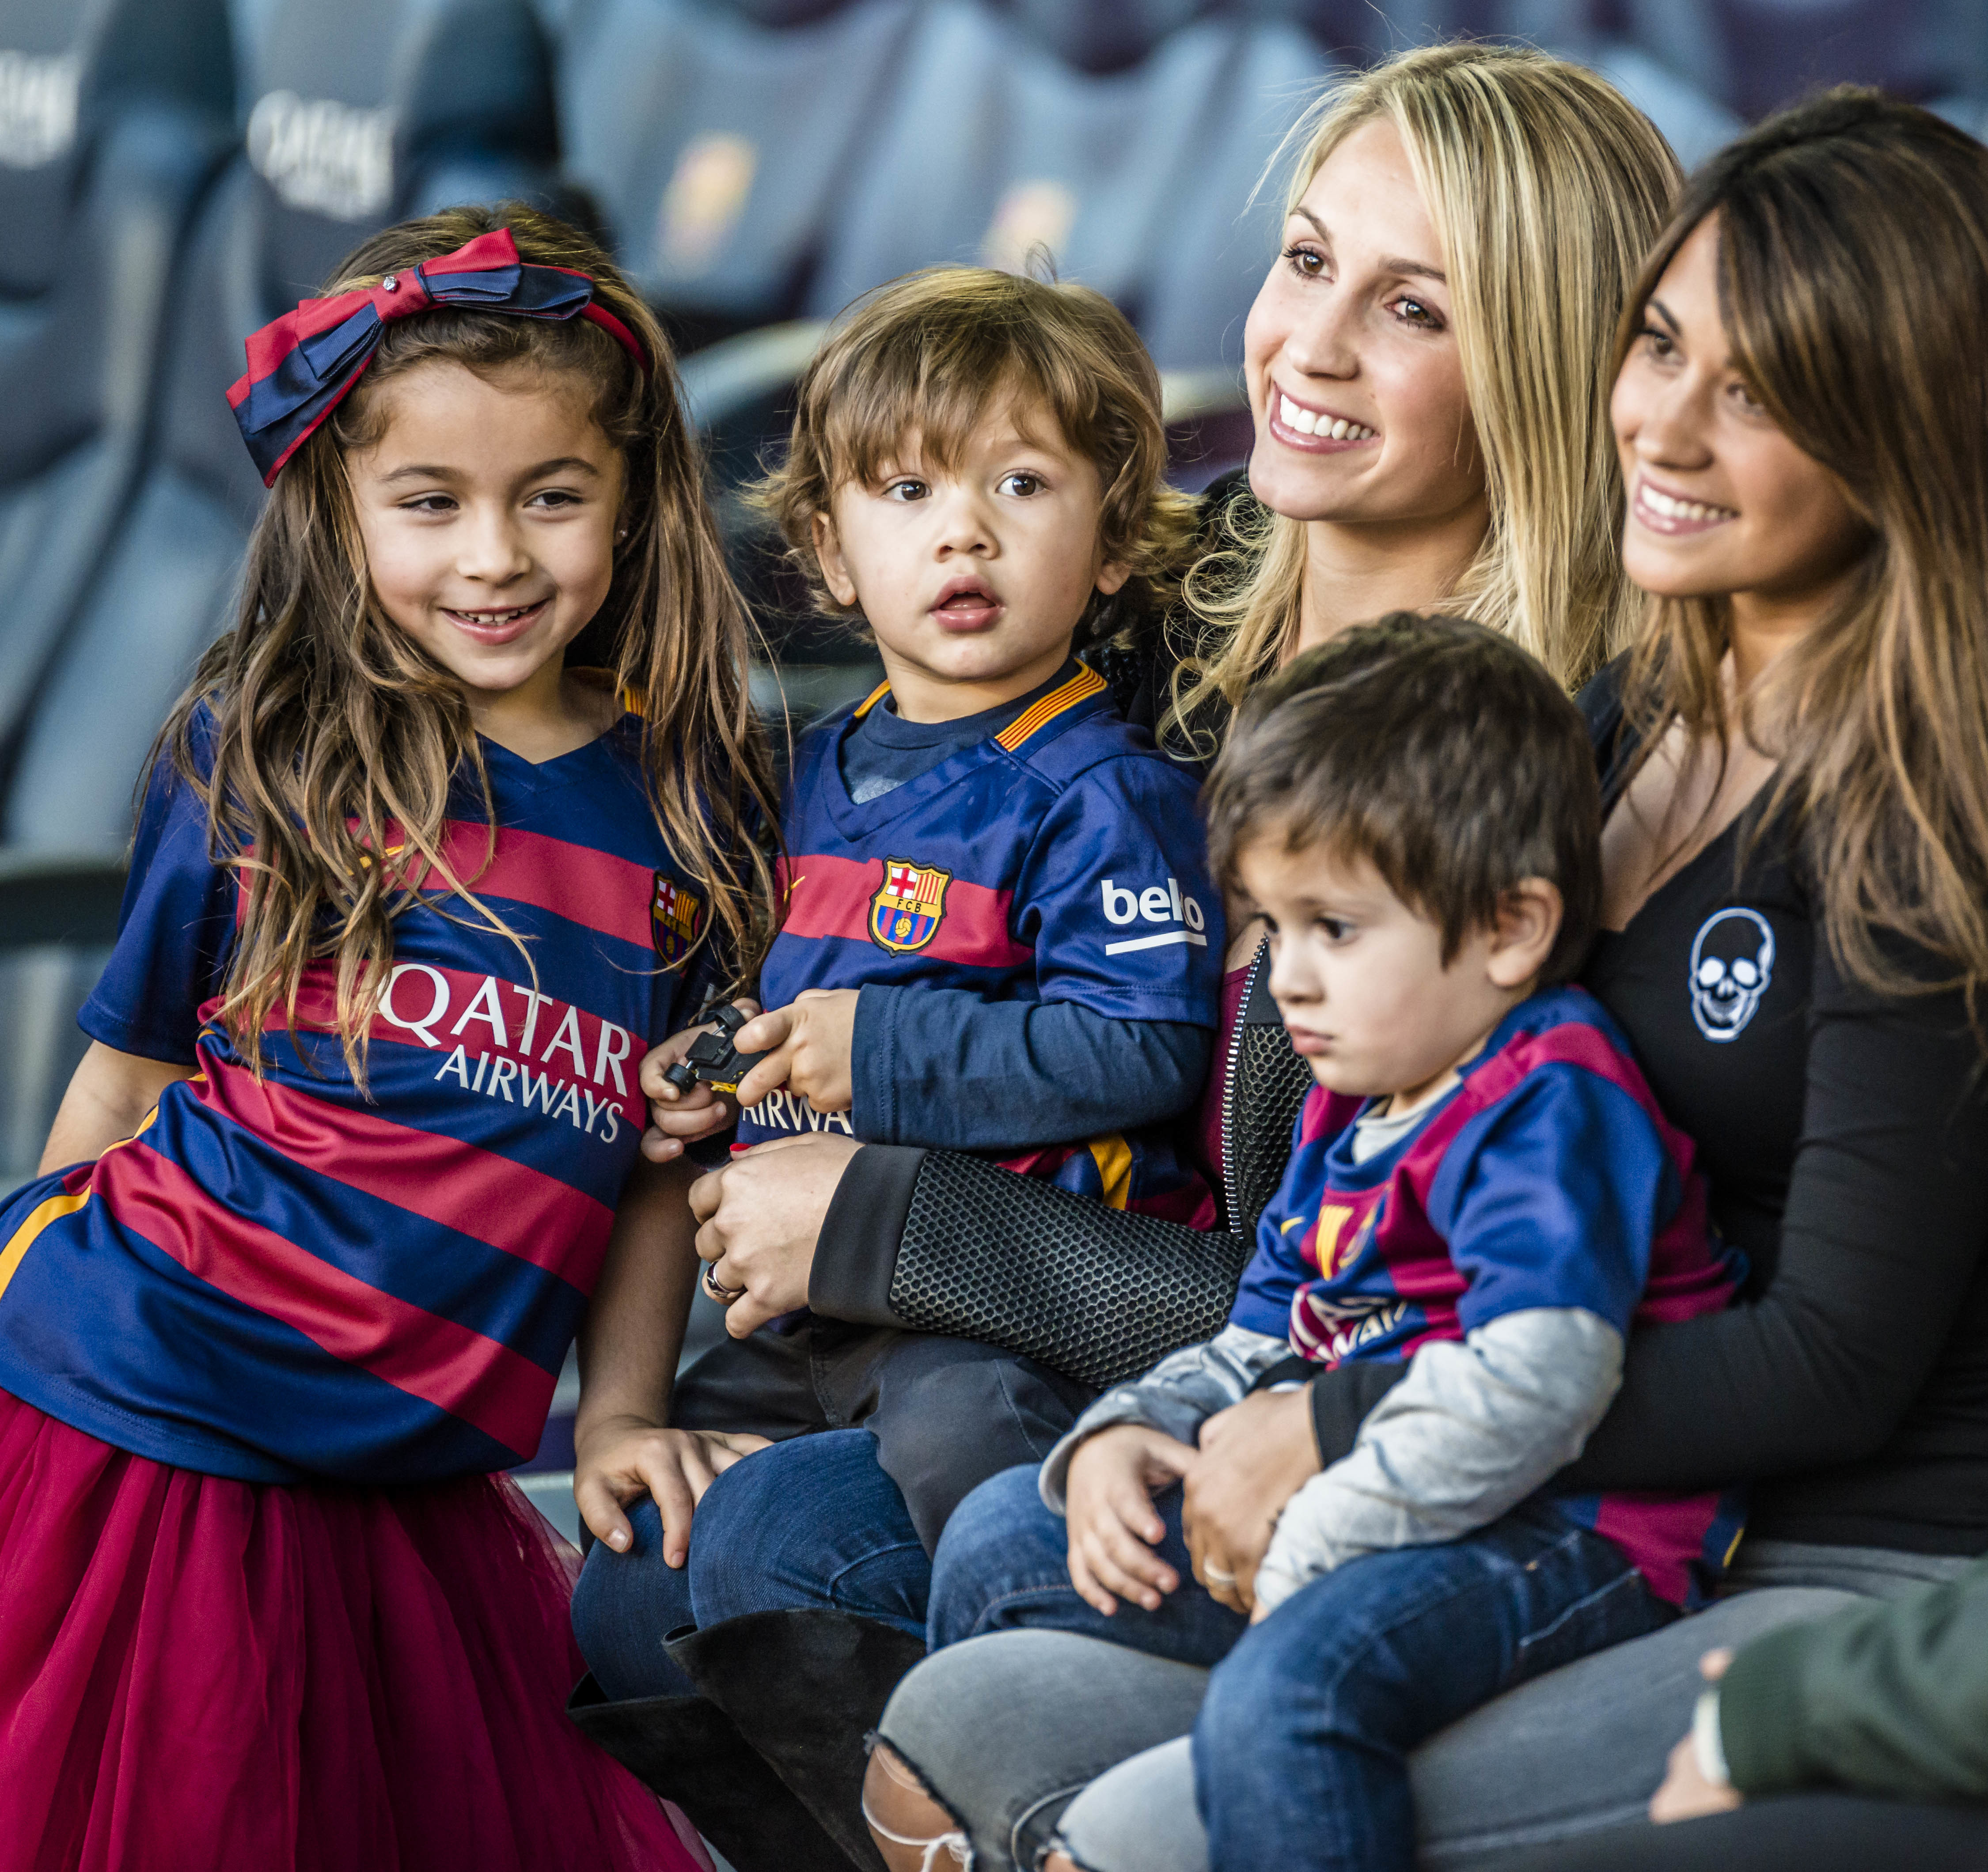 The Messi family watching 'dad.' Image: PA Images